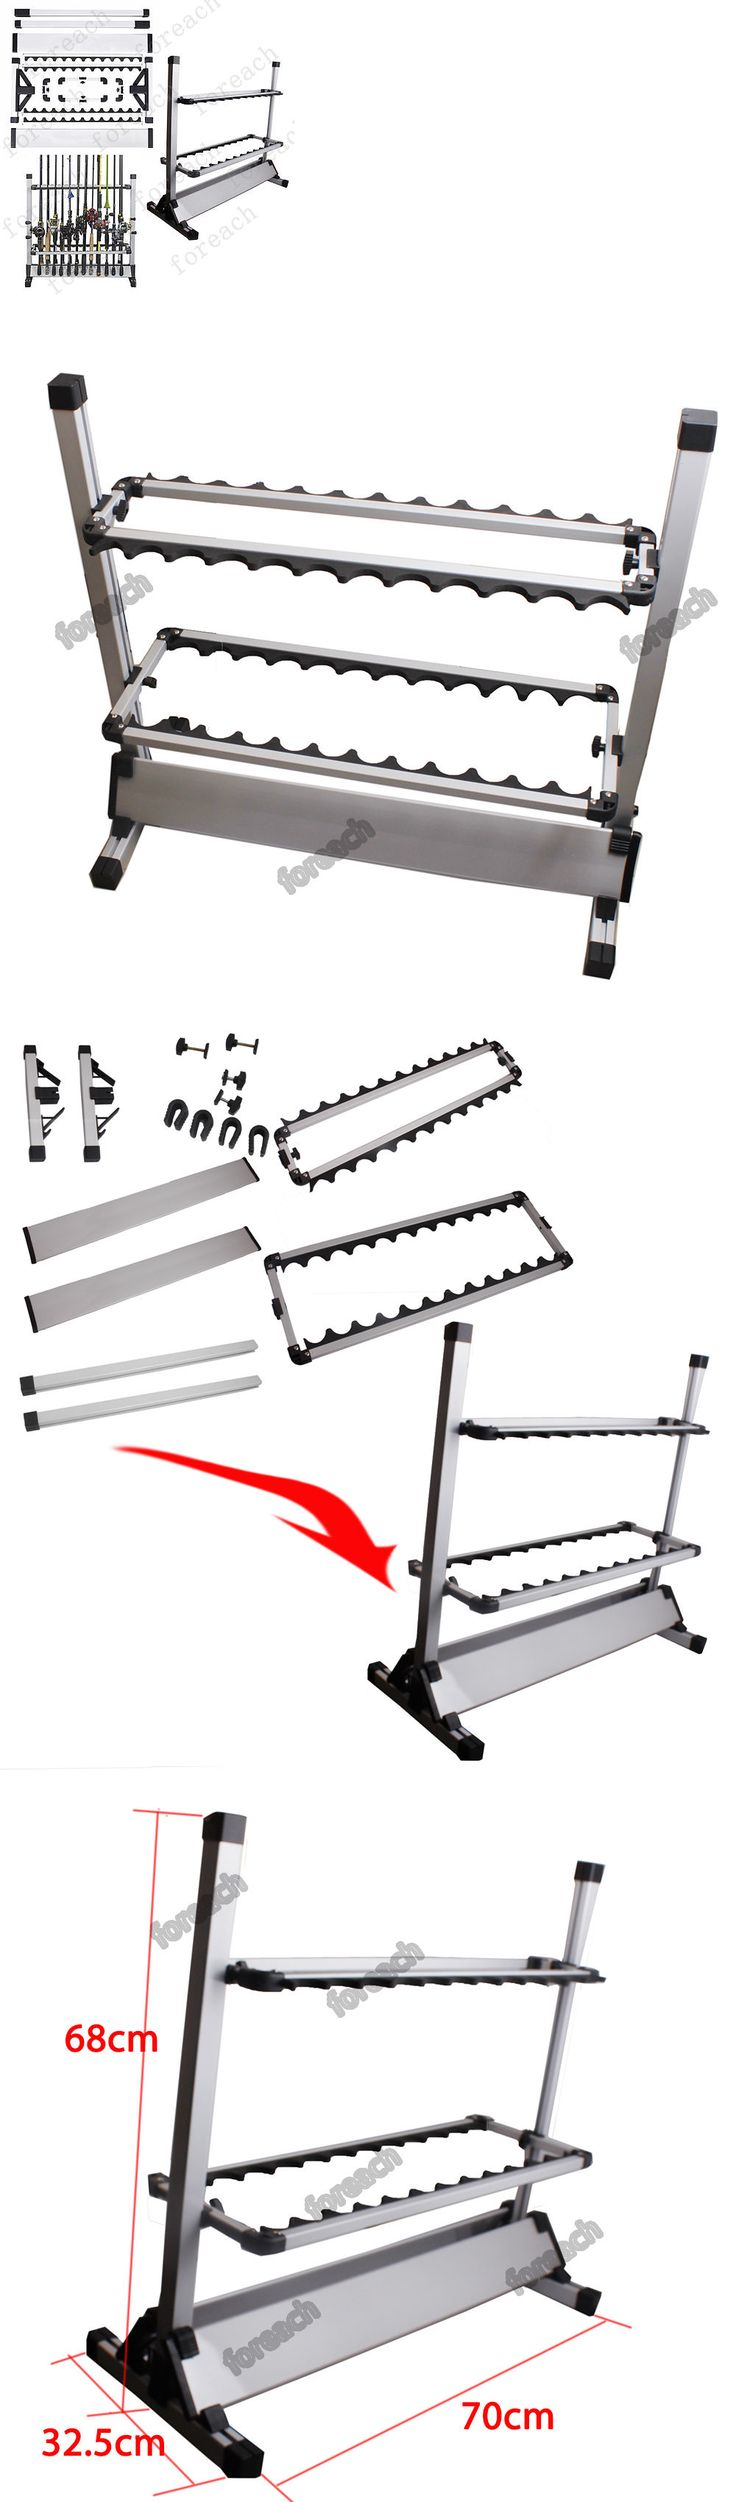 Rod Rests and Holders 72665: Portable 24-Rods Portable Fishing Rod Rack Aluminum Fishing Rod Holder Rod Stand -> BUY IT NOW ONLY: $45.75 on eBay!